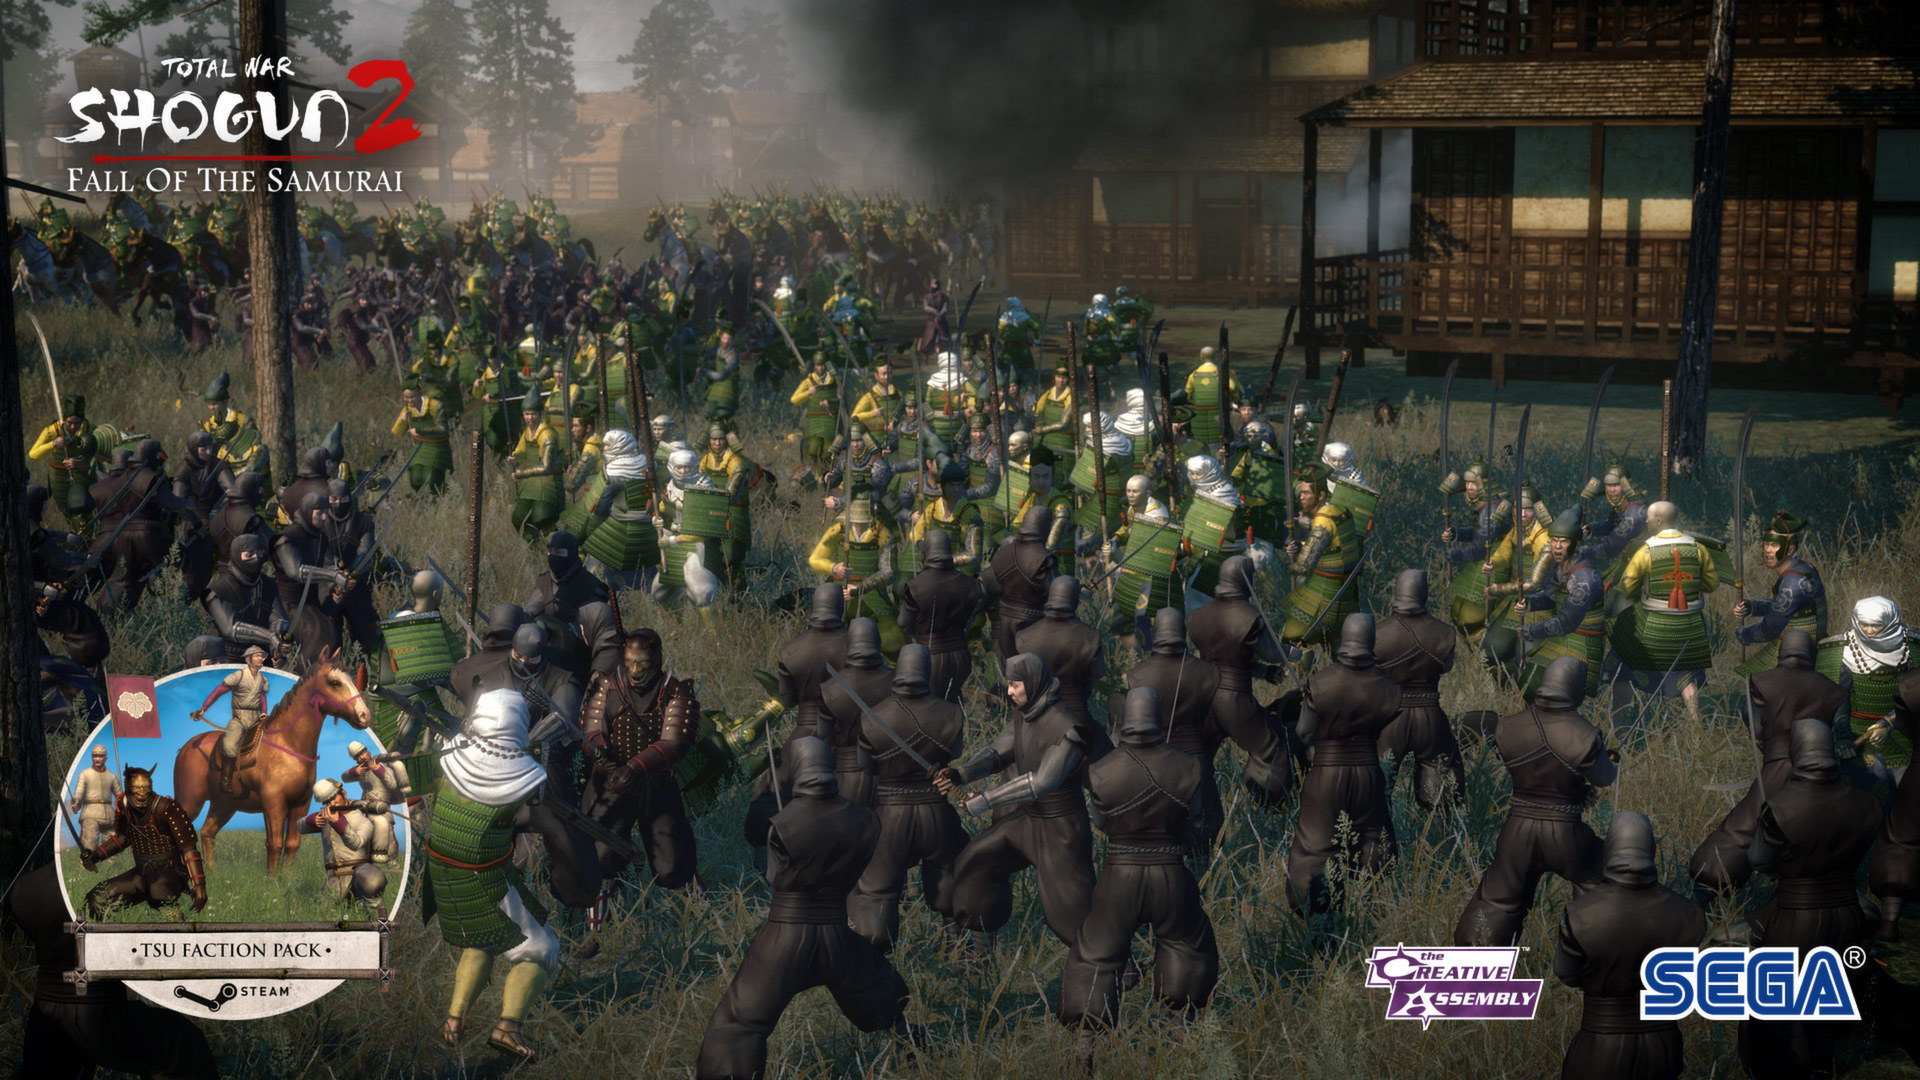 Shogun Total War Køb Total War Shogun 2 Fall Of The Samurai Pc Spil